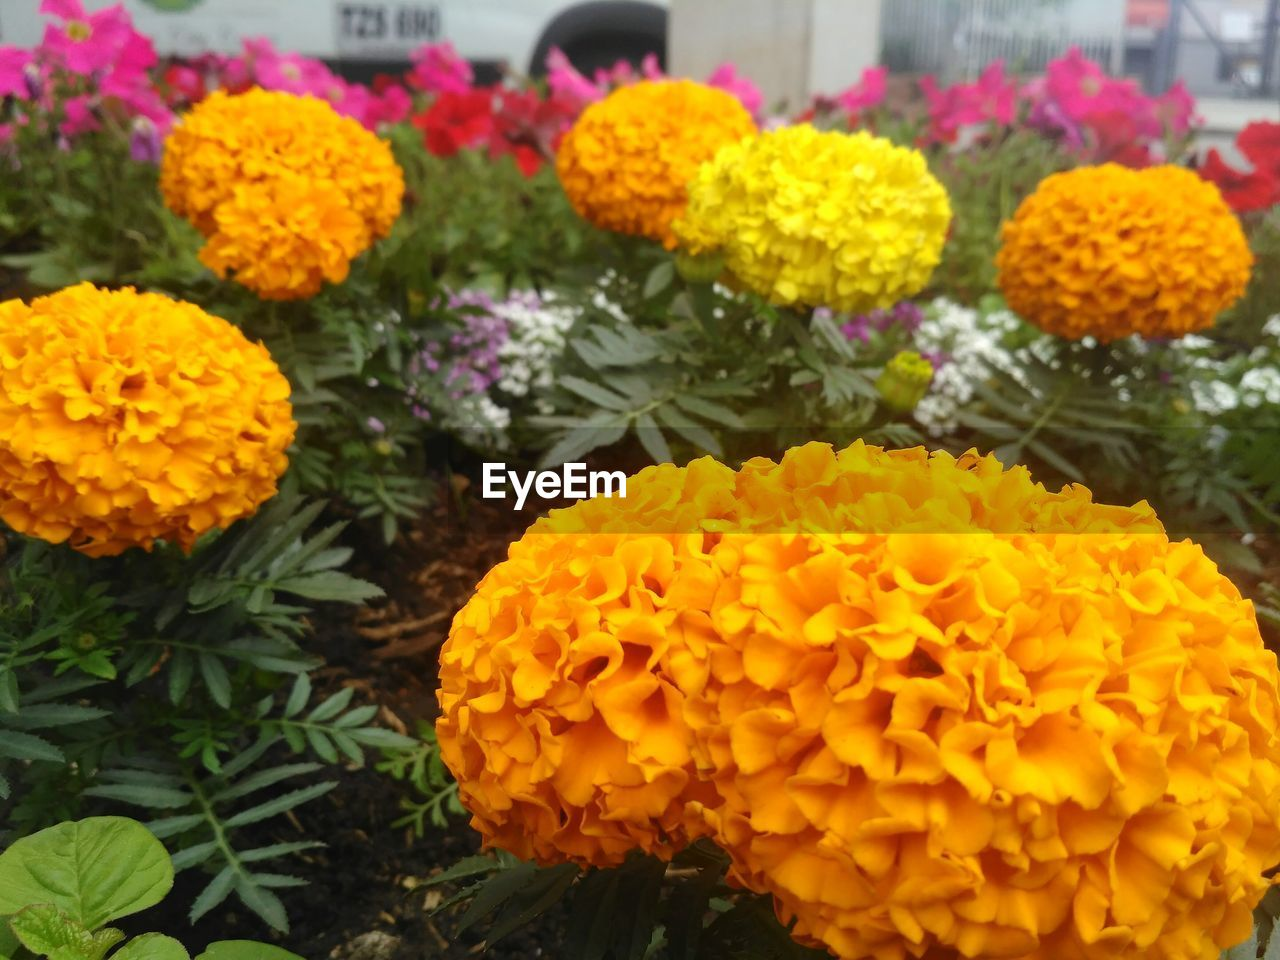 flower, freshness, fragility, yellow, beauty in nature, petal, growth, marigold, flower head, nature, blooming, plant, no people, outdoors, close-up, day, flower market